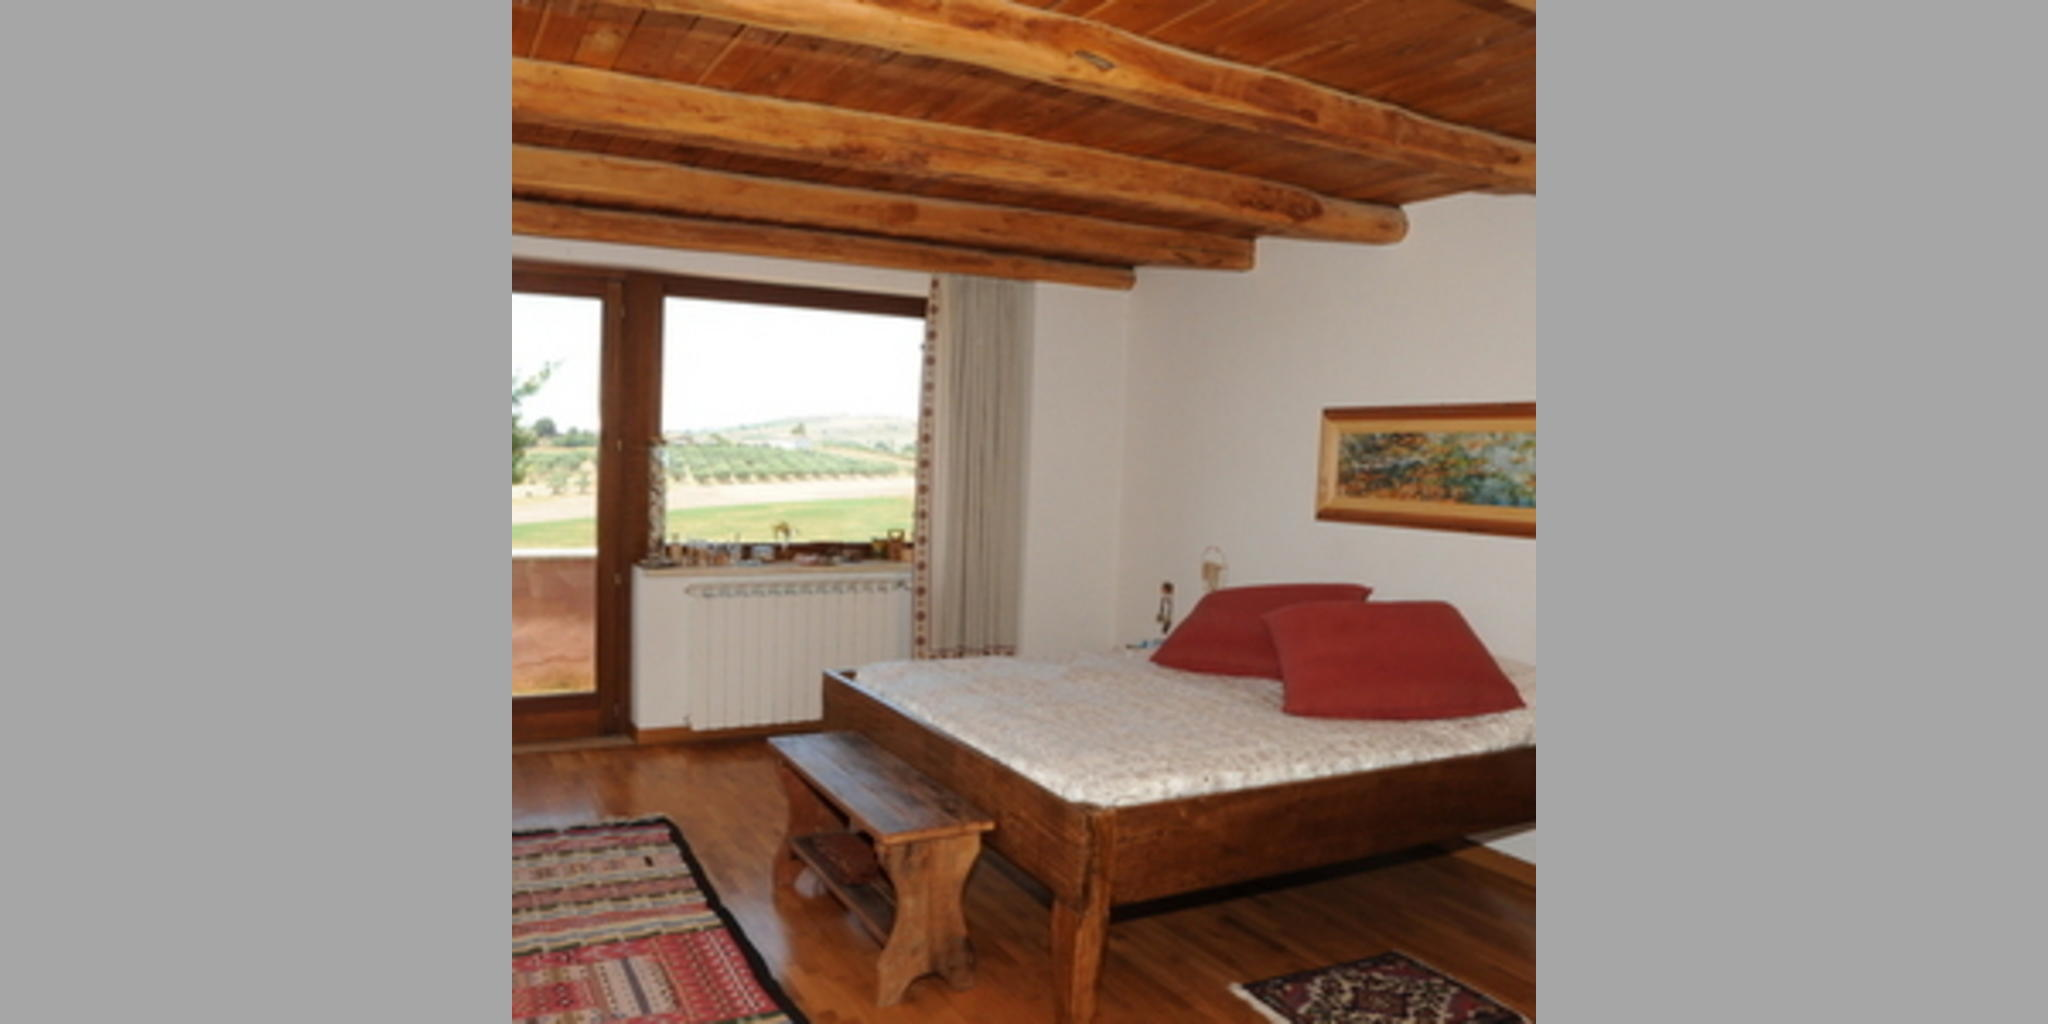 Bed & Breakfast Sacrofano - Roma_Sacrofano